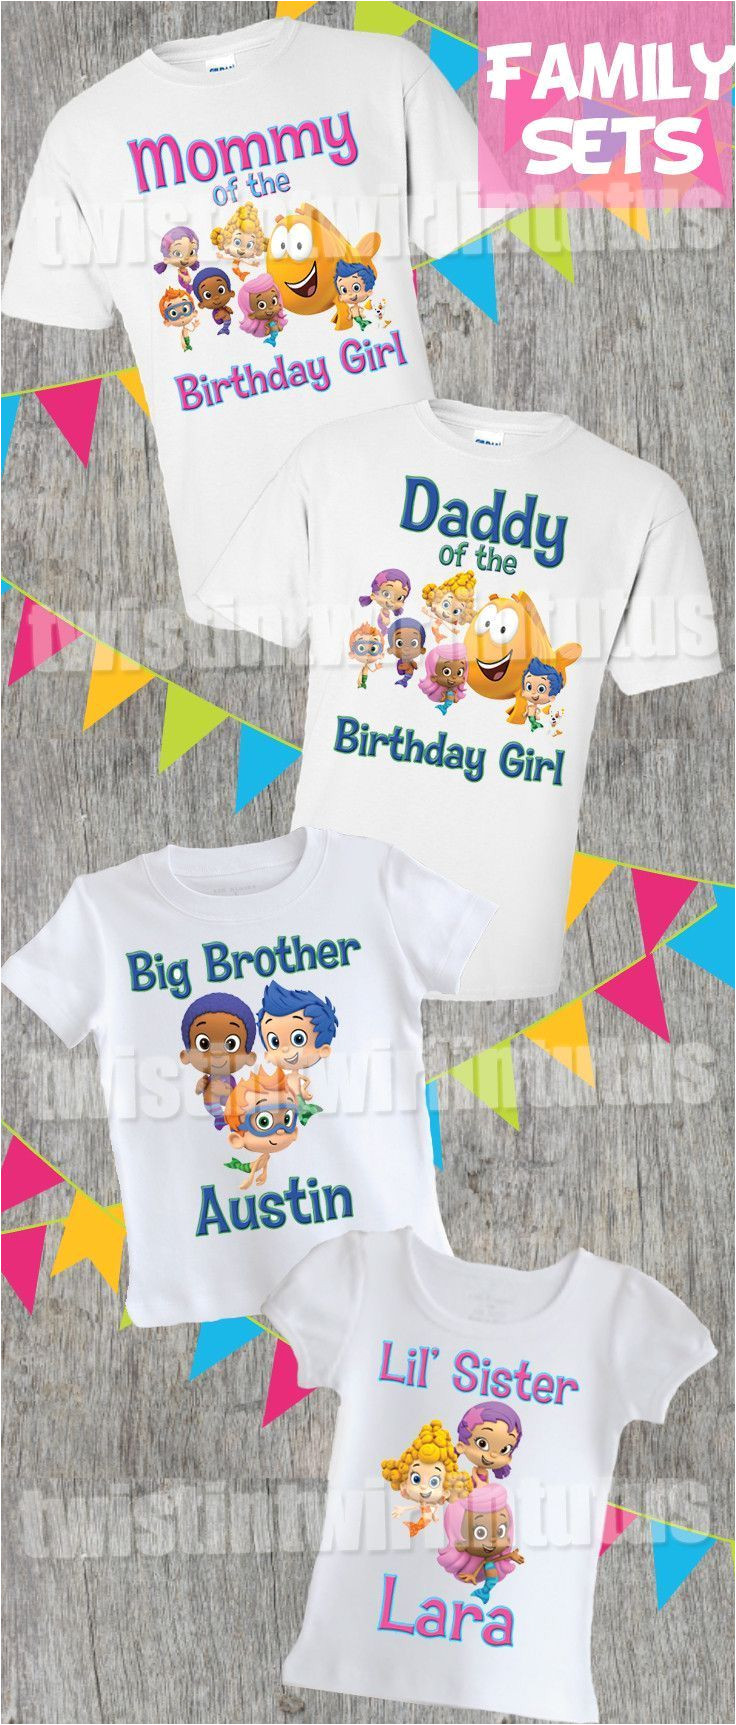 bubble guppies family birthday shirts in 2018 family sets pinterest birthday birthday shirts and family birthday shirts